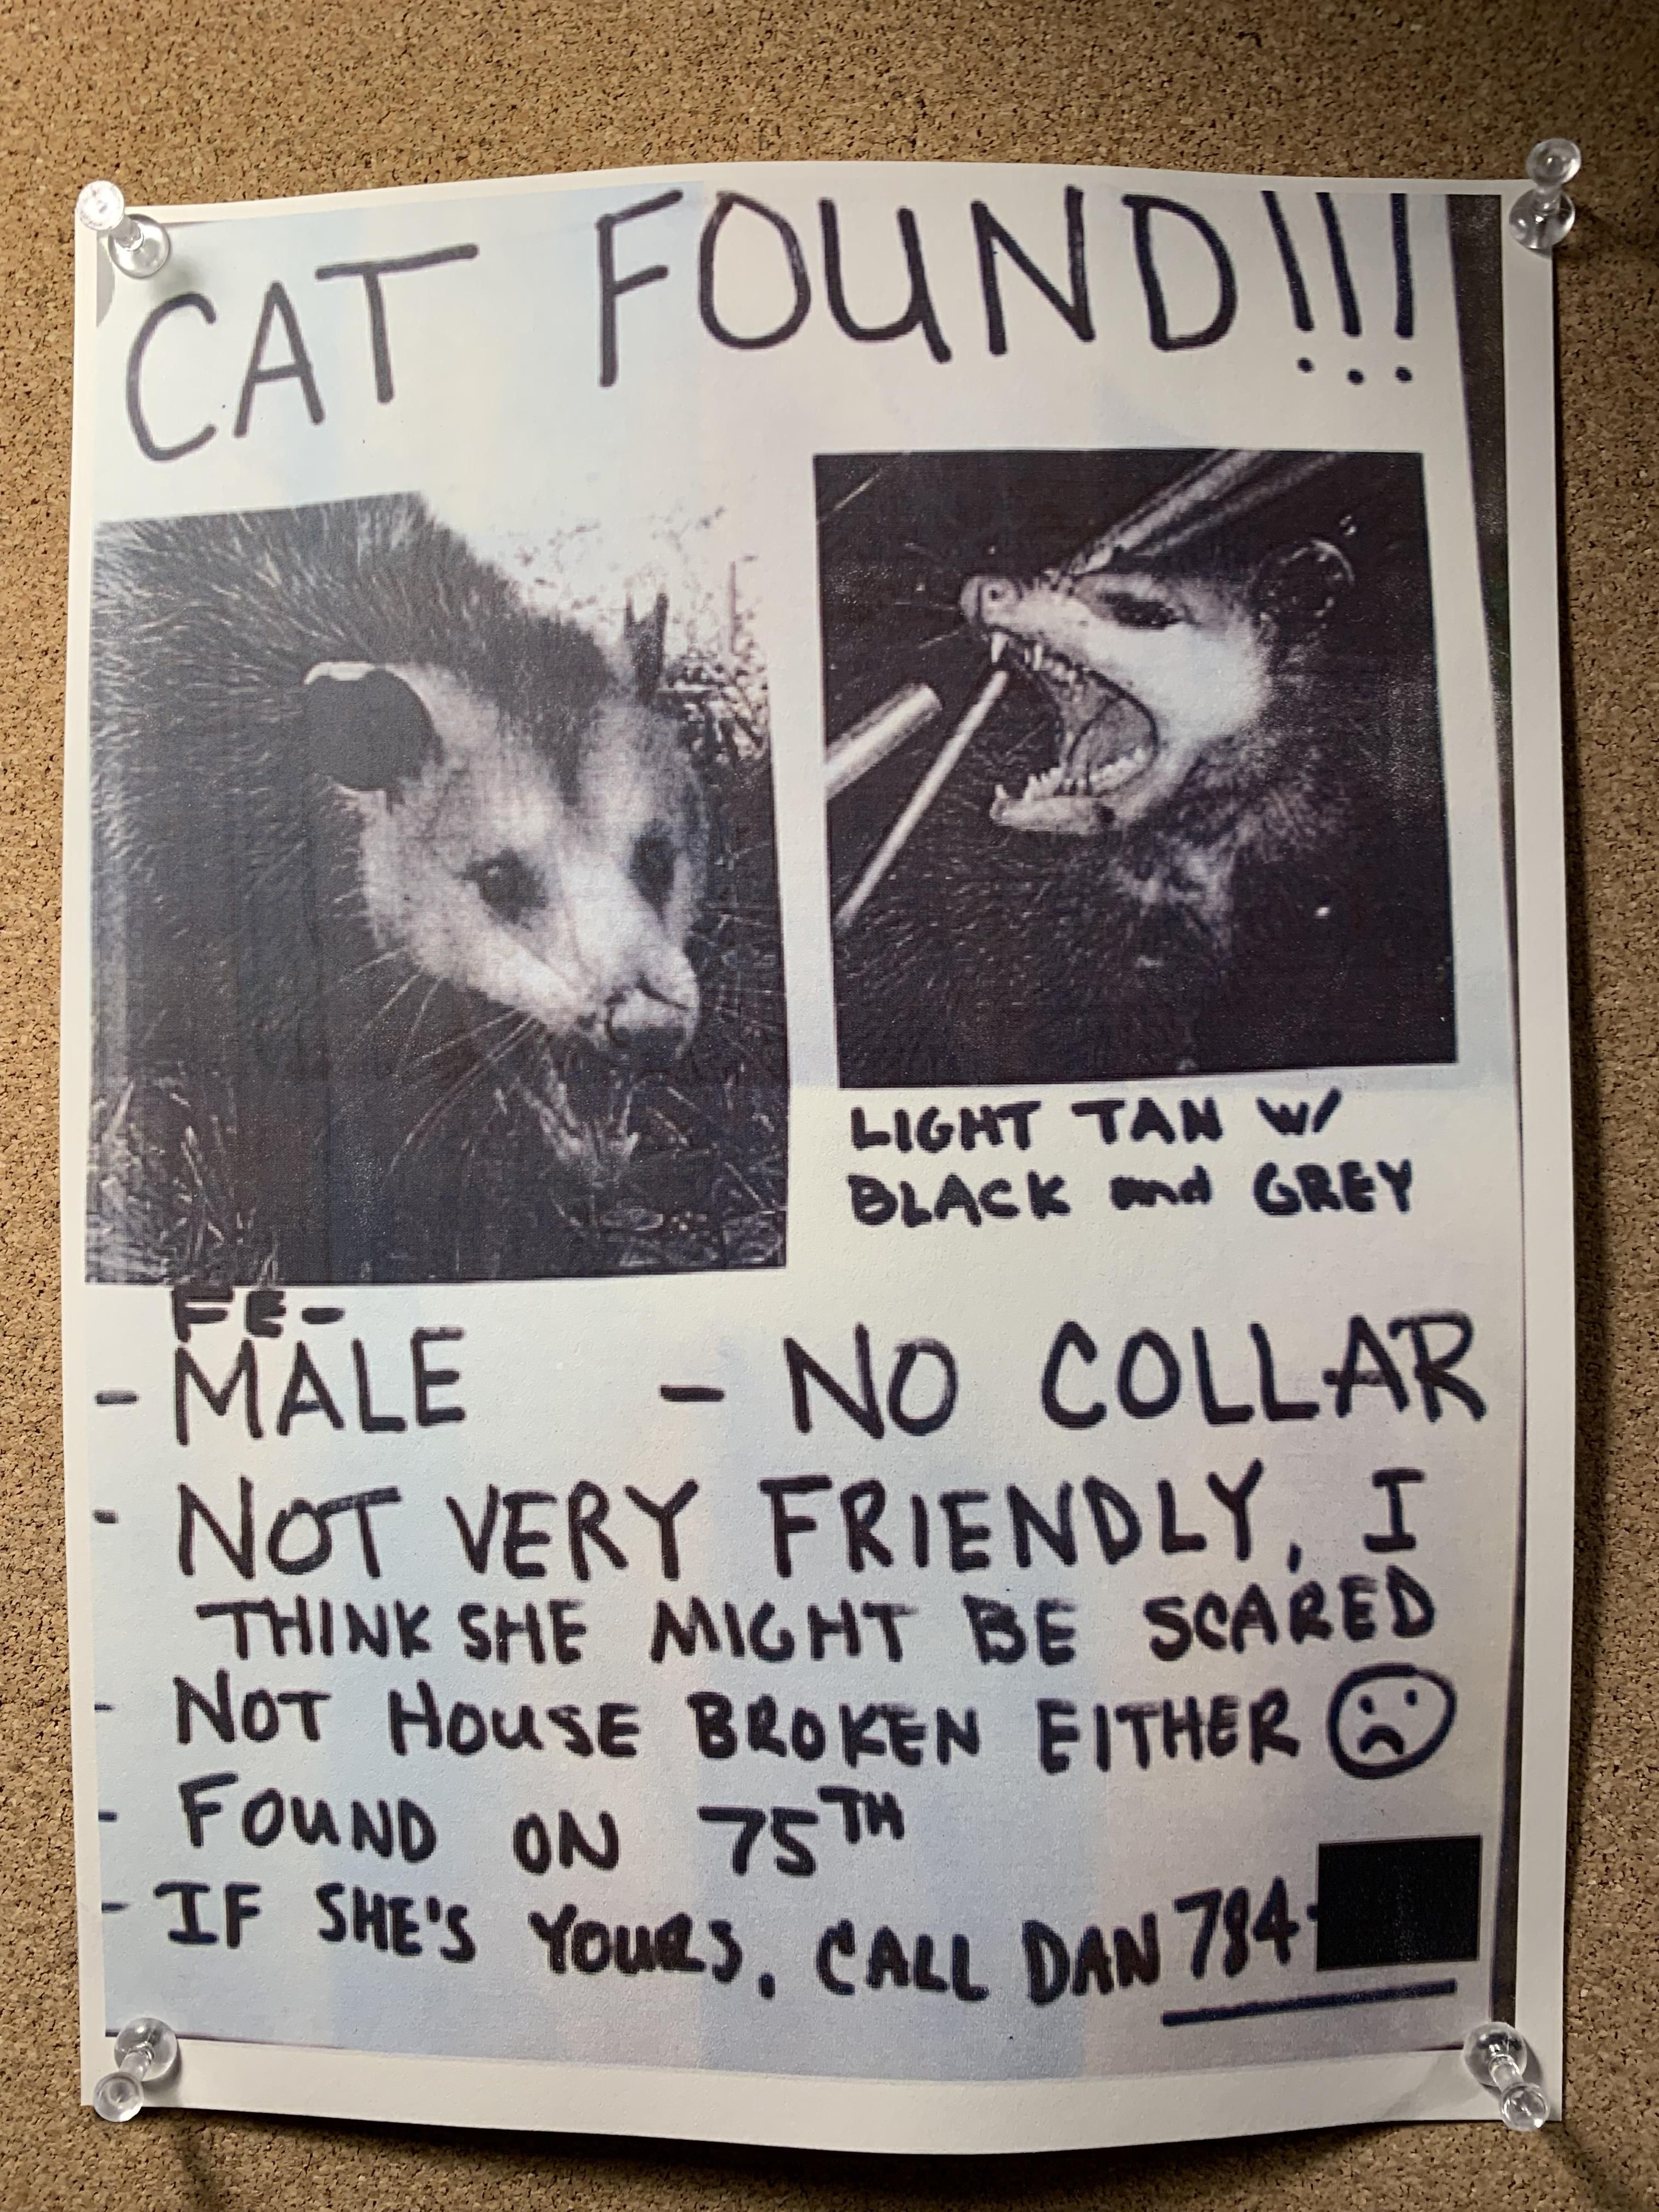 Found Cat flyer at local restaurant Found cat, Cats